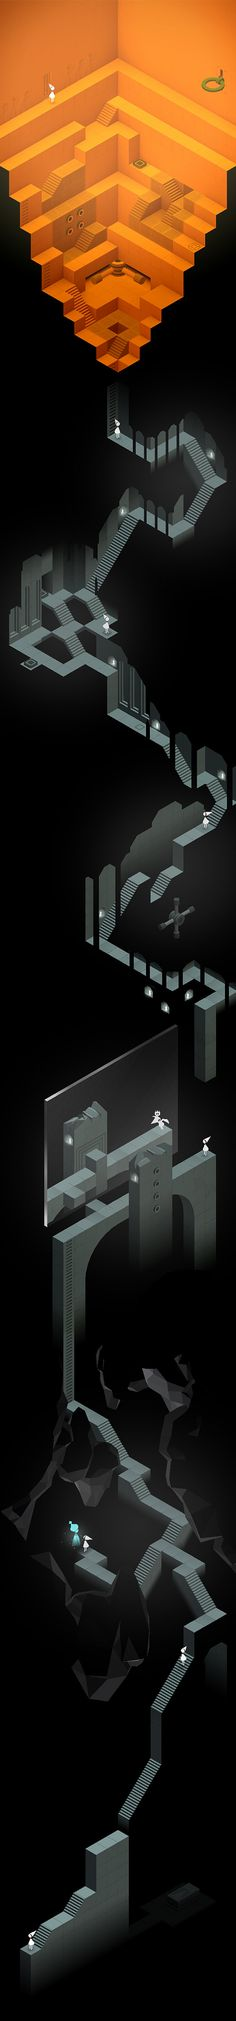 나의 하루 Monument Valley game - The Descent (Chapter IX), full vertical picture with Ida (the princess) and monument stairs. Isometric Art, Isometric Design, Monument Valley Game, Game Level Design, Ombres Portées, Low Poly, Game Background, Art Graphique, Environment Design